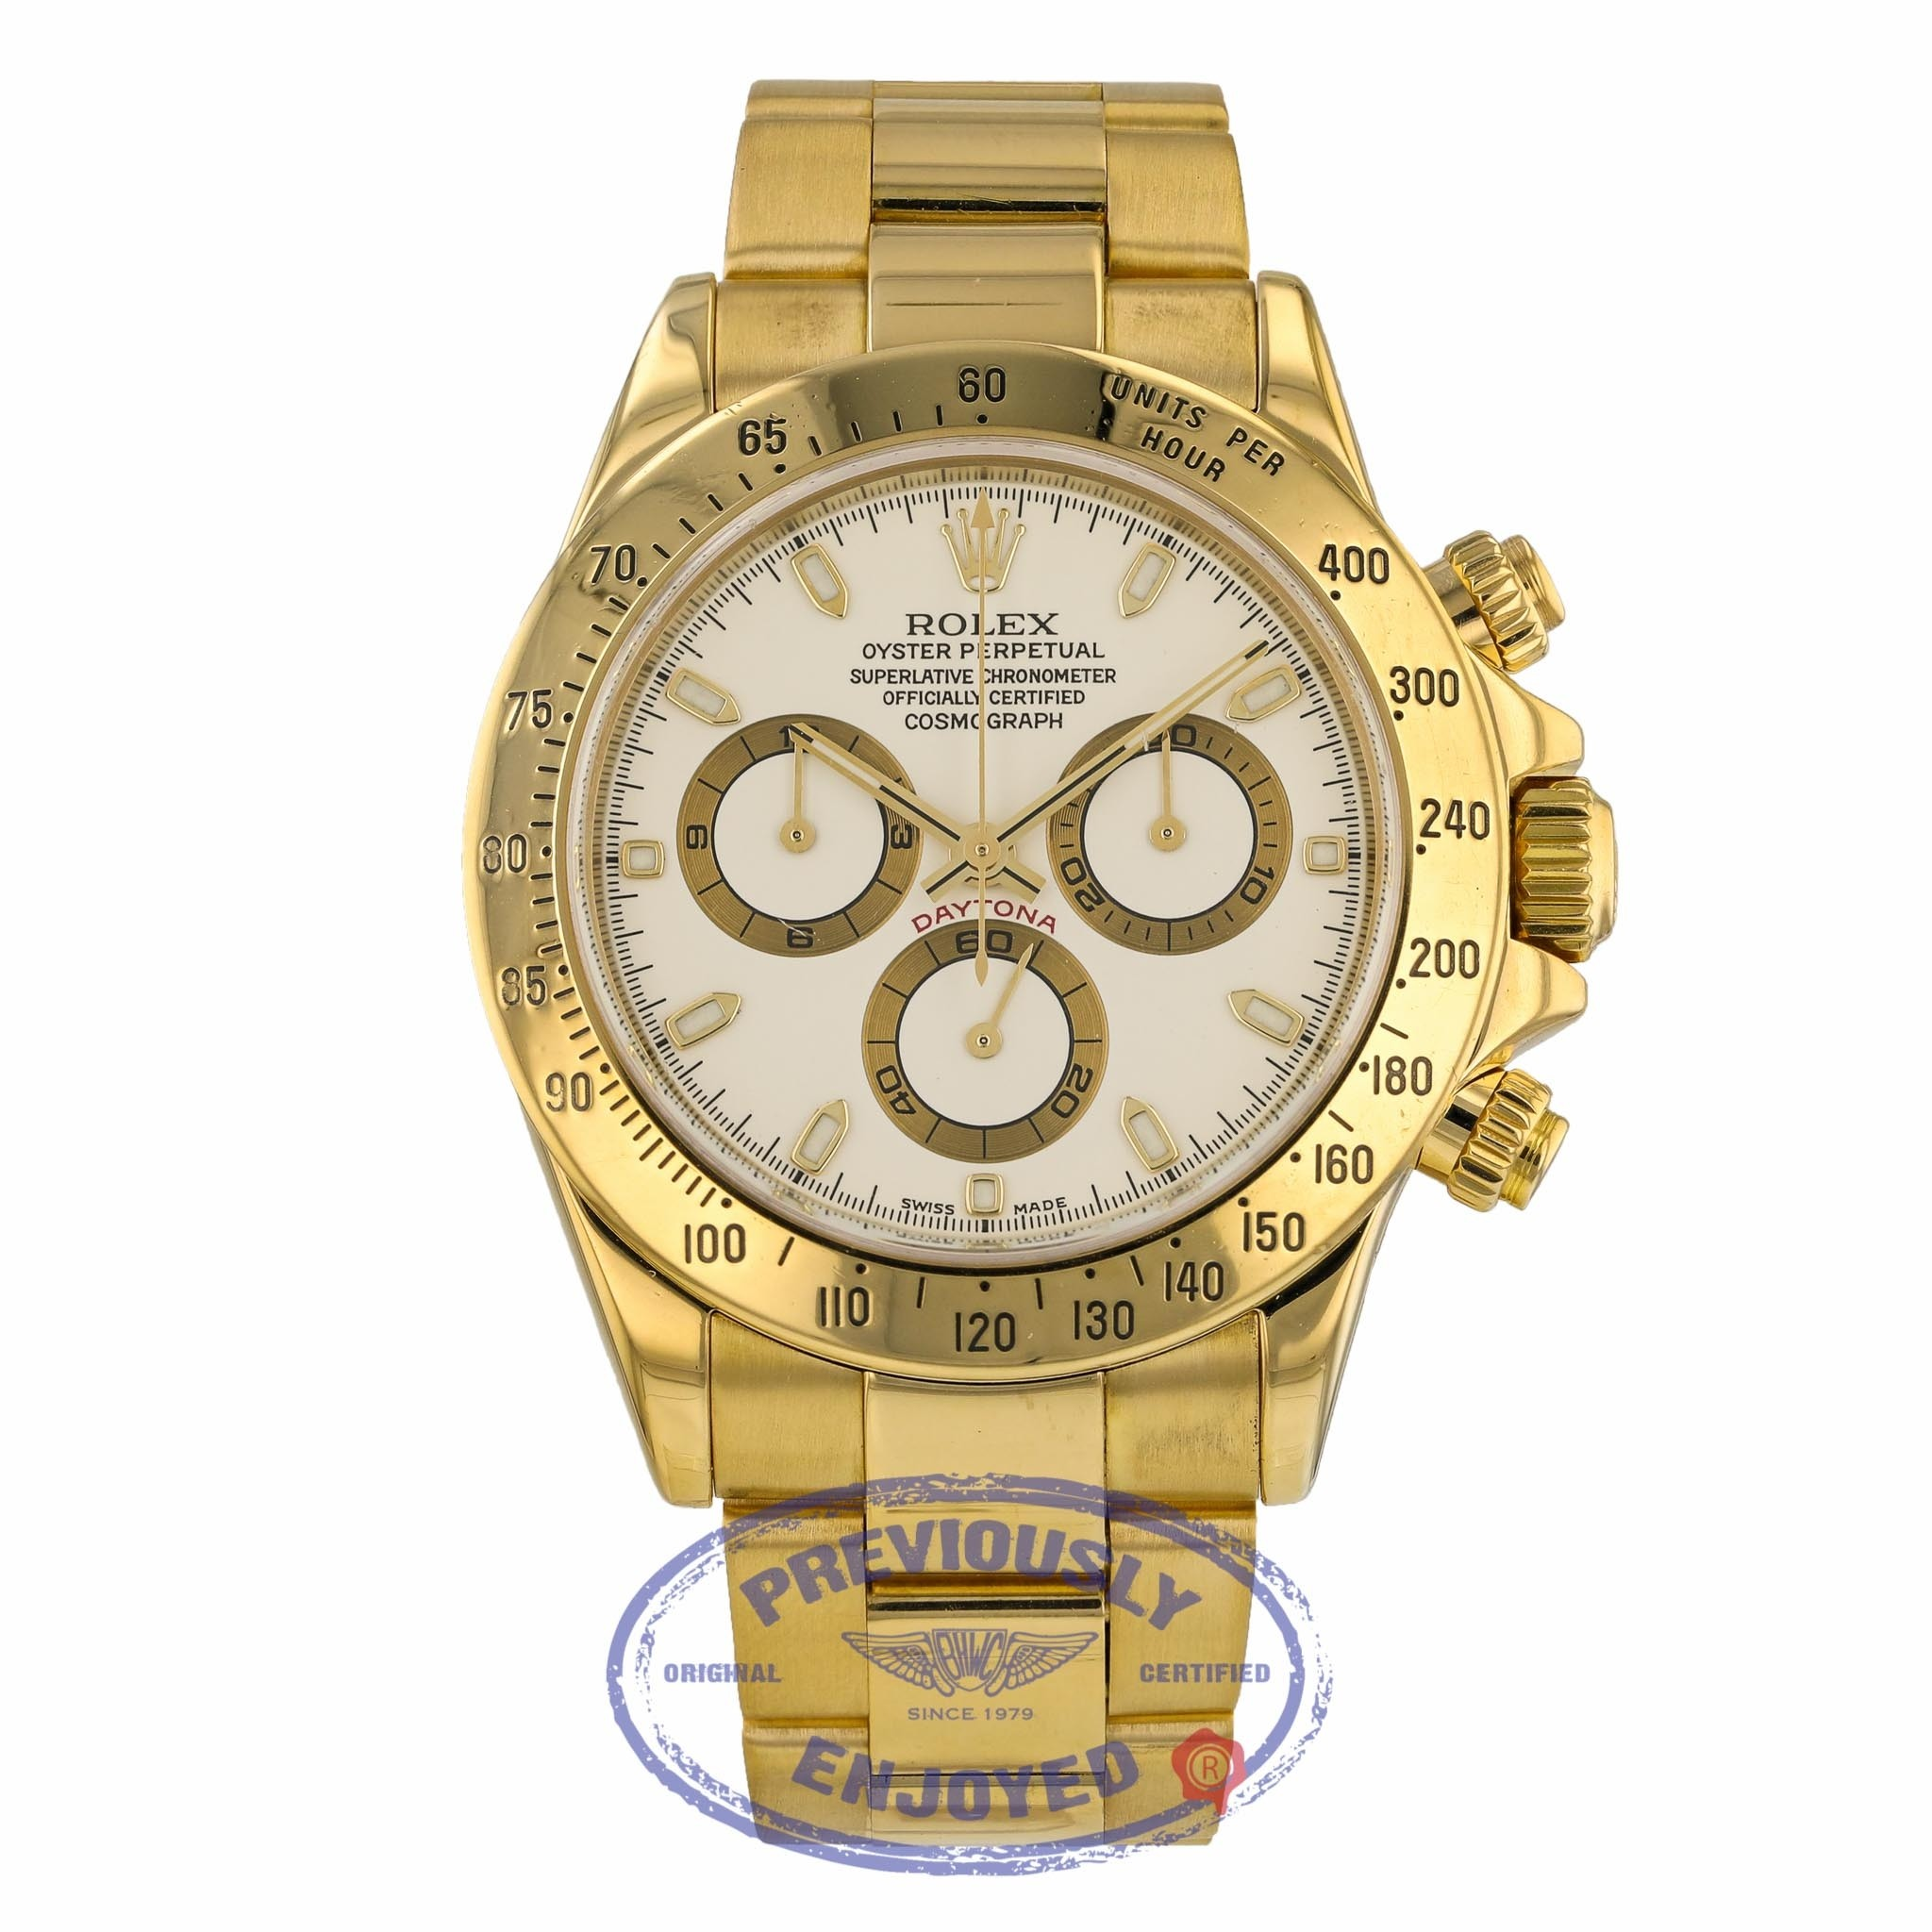 Rolex Daytona Cosmograph Yellow Gold White Index Dial Oyster Bracelet 116528 T22448 - Beverly Hills Watch Company